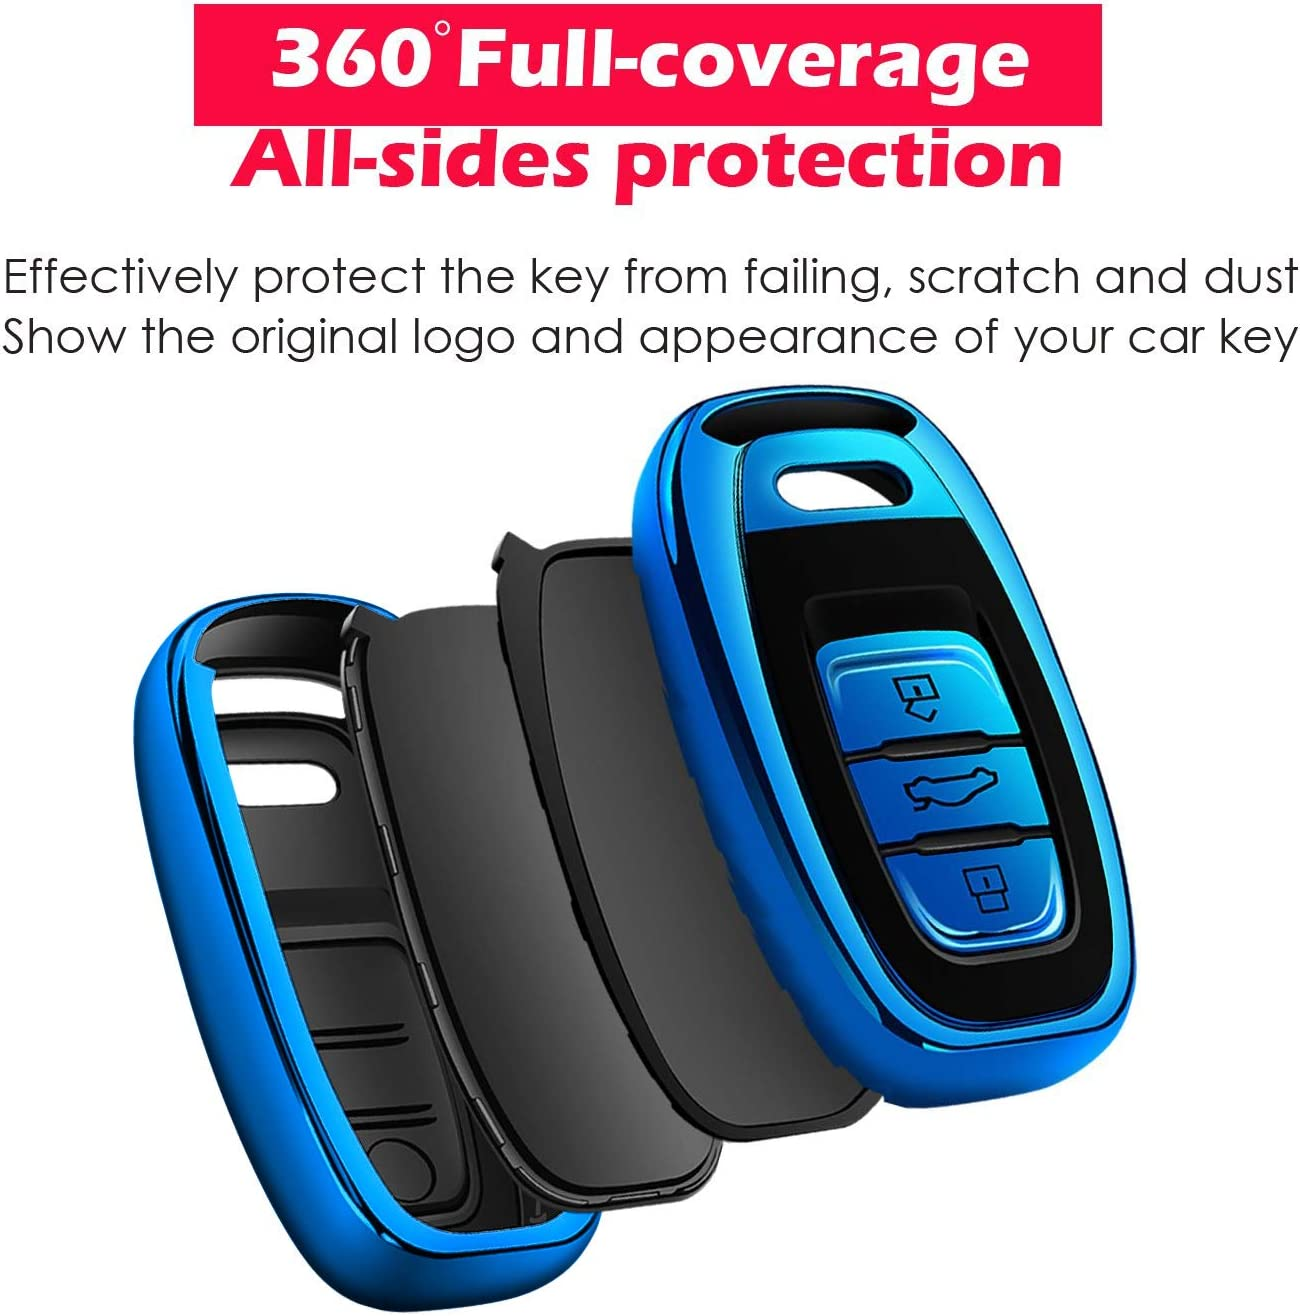 Autophone for Audi Key Fob Cover Premium Soft TPU 360 Degree Entire Protection Key Shell Key Case Compatible with Audi A1 A3 A4 A5 A6 A7 A8 Q3 Q5 Q7 S3 S4 S5 S6 S7 S8 SQ5 RS5 RS7 Smart Key-Red